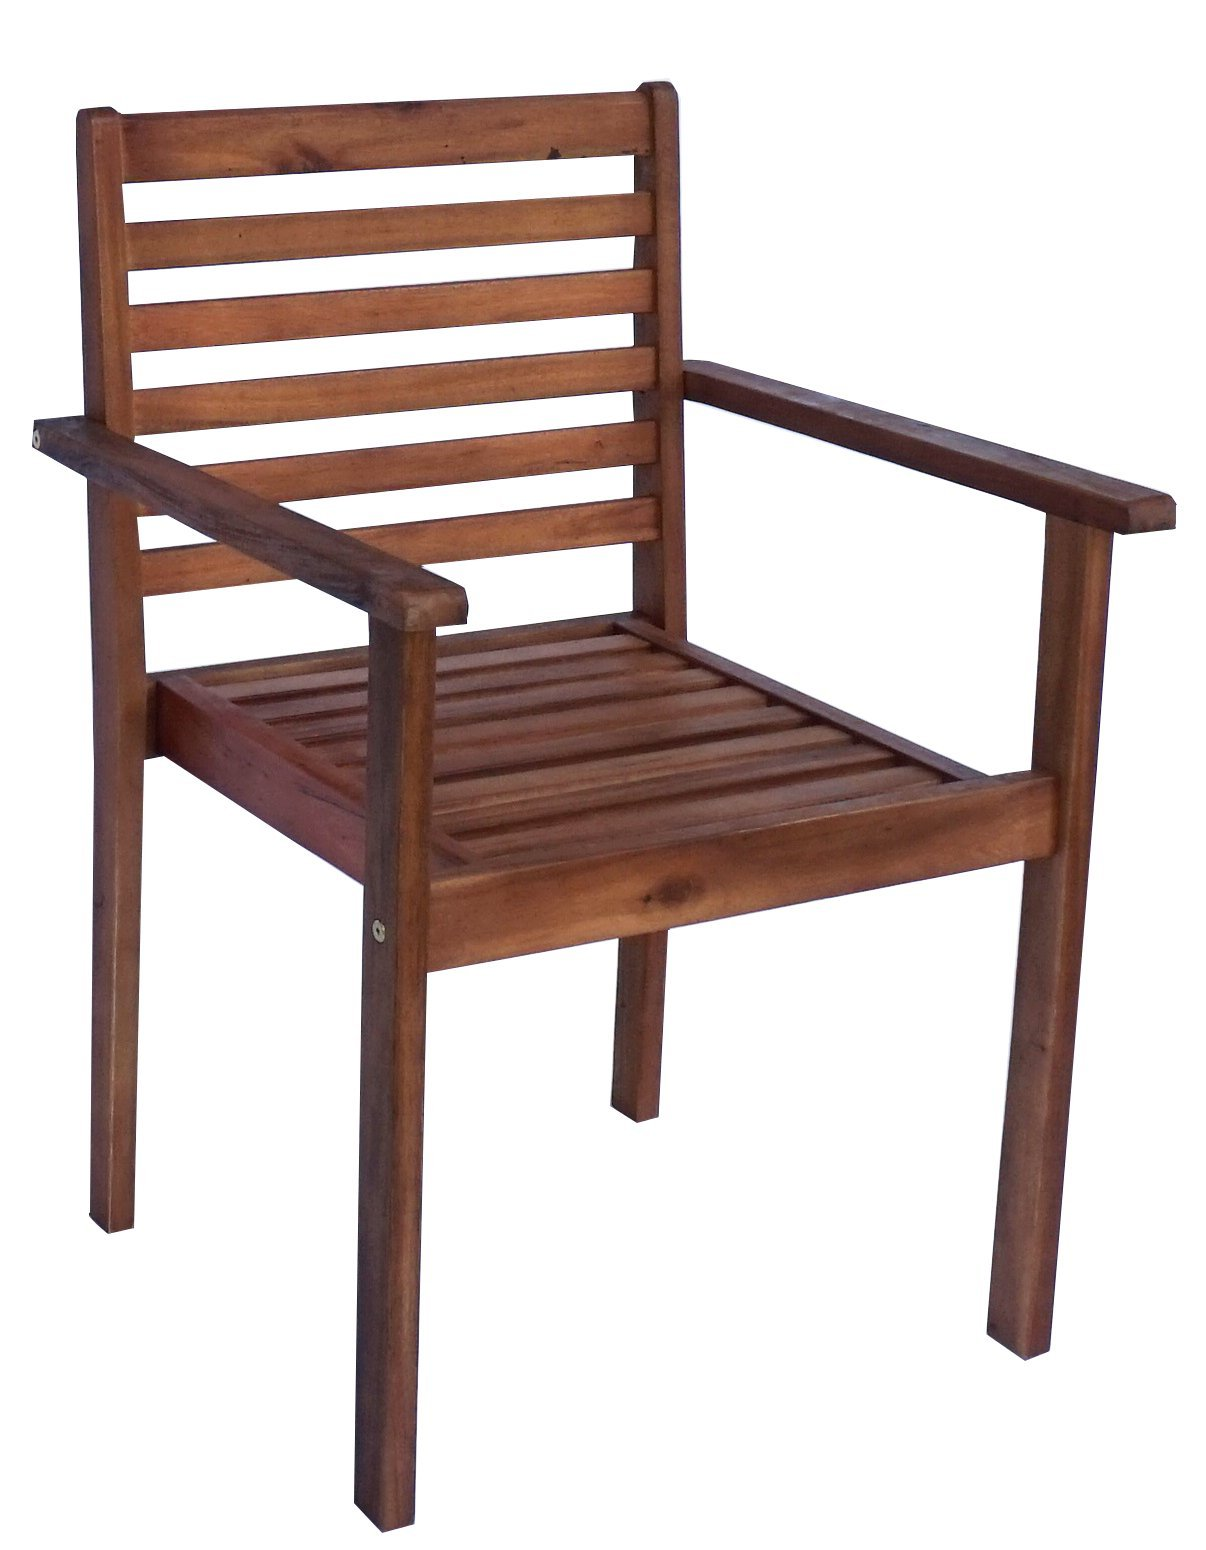 "Zen Garden Eucalyptus Stackable Patio Outdoor Arm Chair, 23.25"" x 23.25"" x 34"", Natural Wood Finish, Set of 4 Chairs - Set of 4 stackable arm chairs. Chairs are 23"" deep and 34"" high Light assembly required Chairs are stackable, strong and durable. Great for patios and outdoor seating - patio-furniture, patio-chairs, patio - 71u0kMHnndL -"